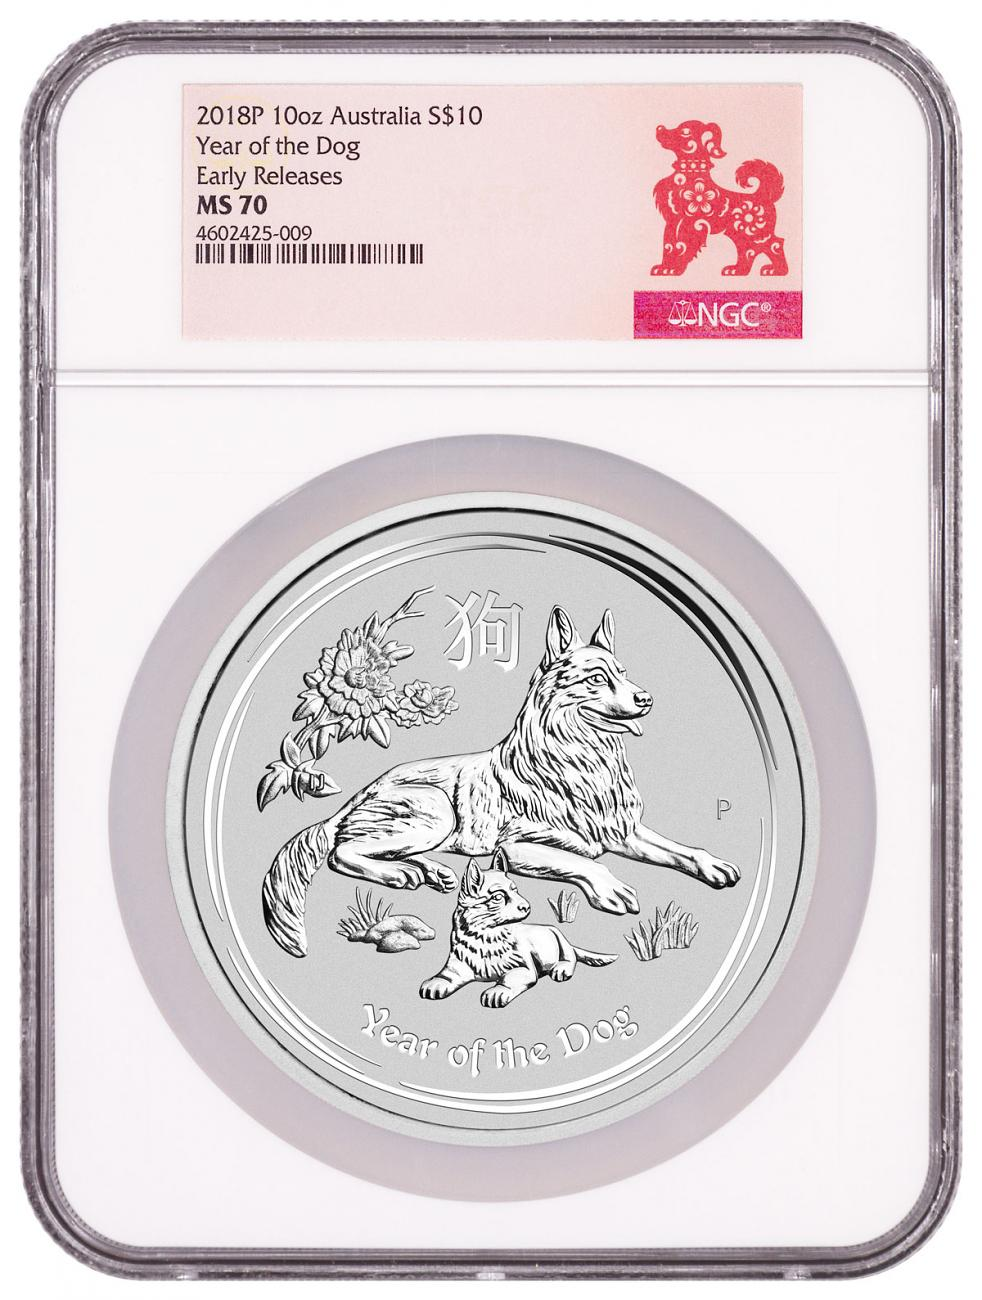 2018-P Australia Year of the Dog 10 oz Silver Lunar (Series 2) $10 Coin NGC MS70 ER Year of the Dog Label